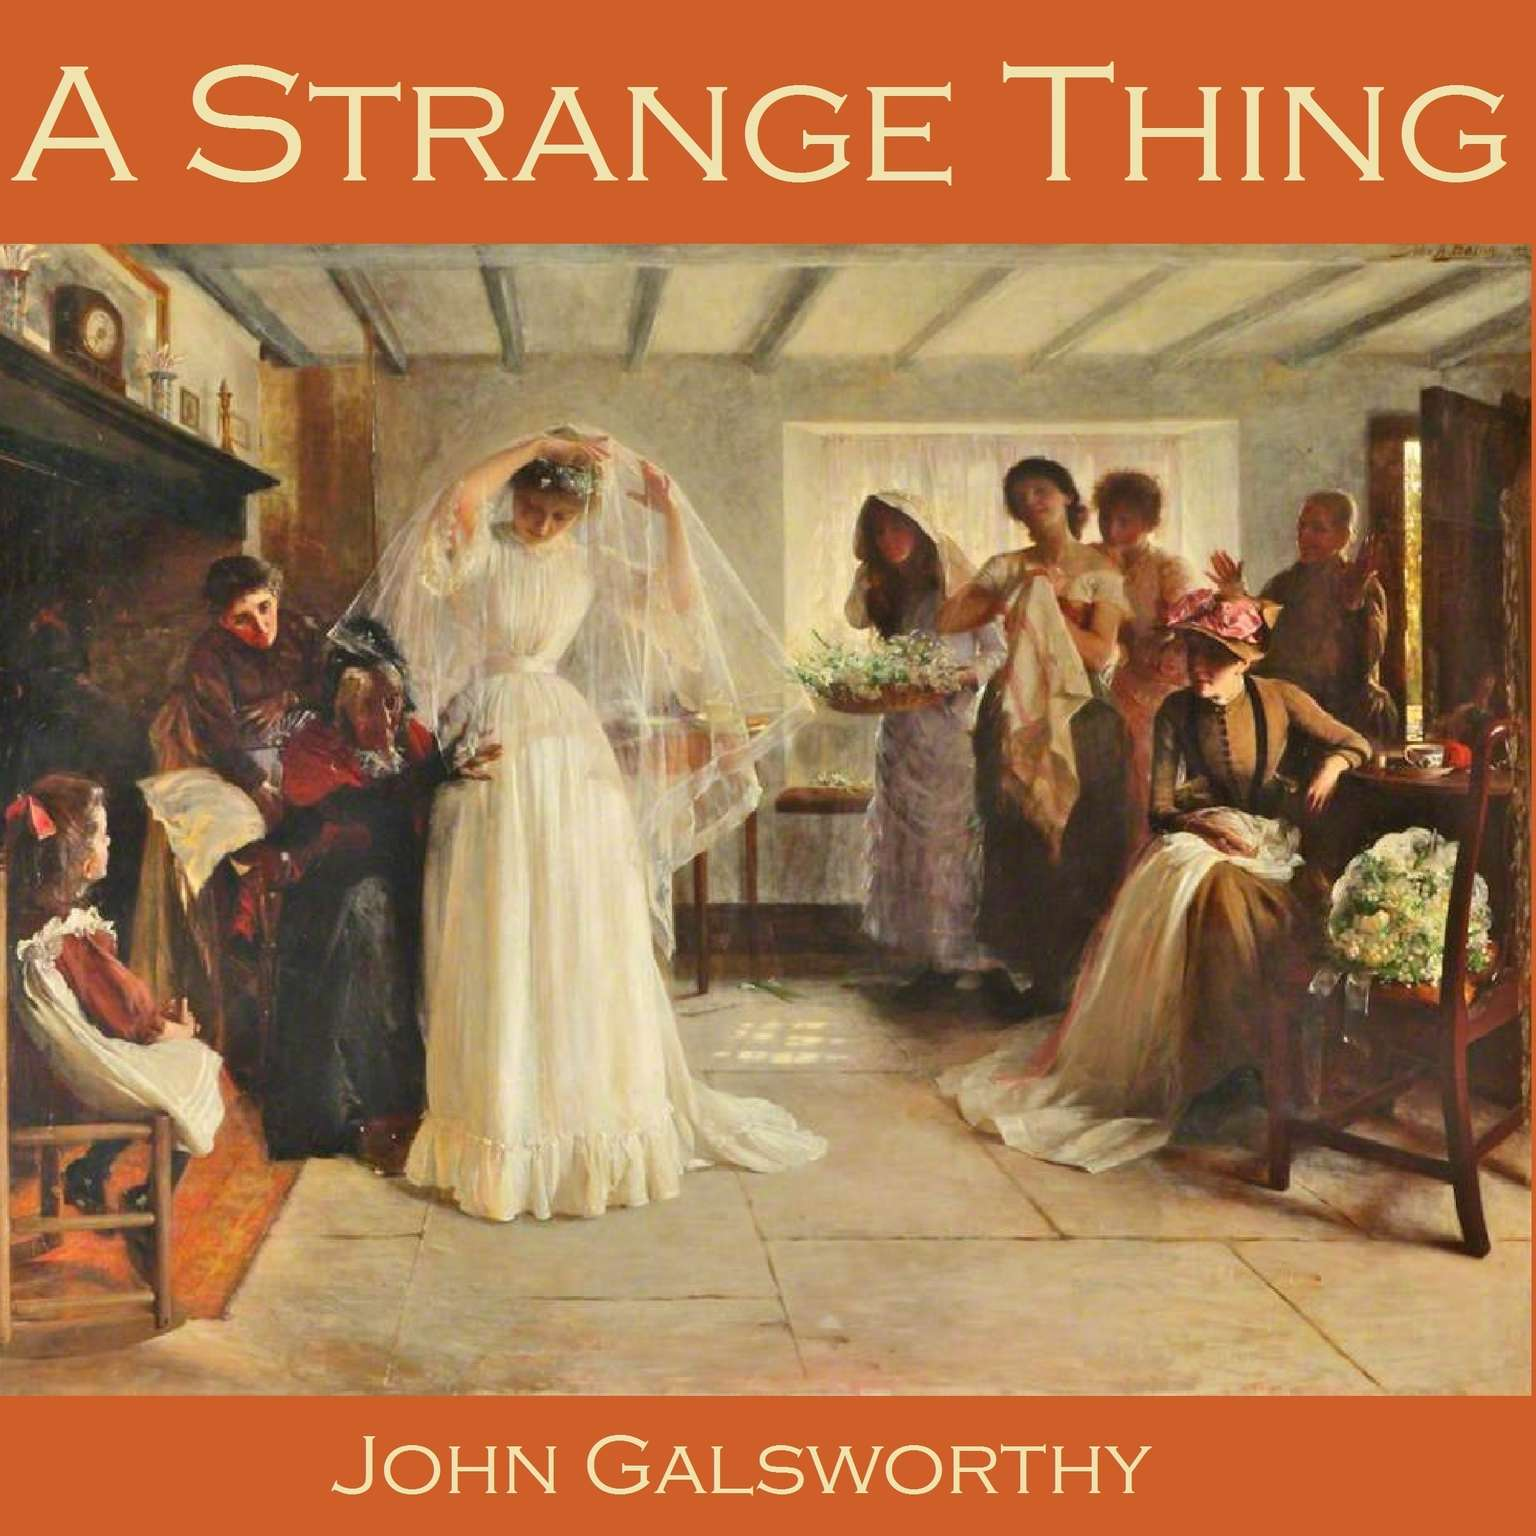 A Strange Thing Audiobook, by John Galsworthy